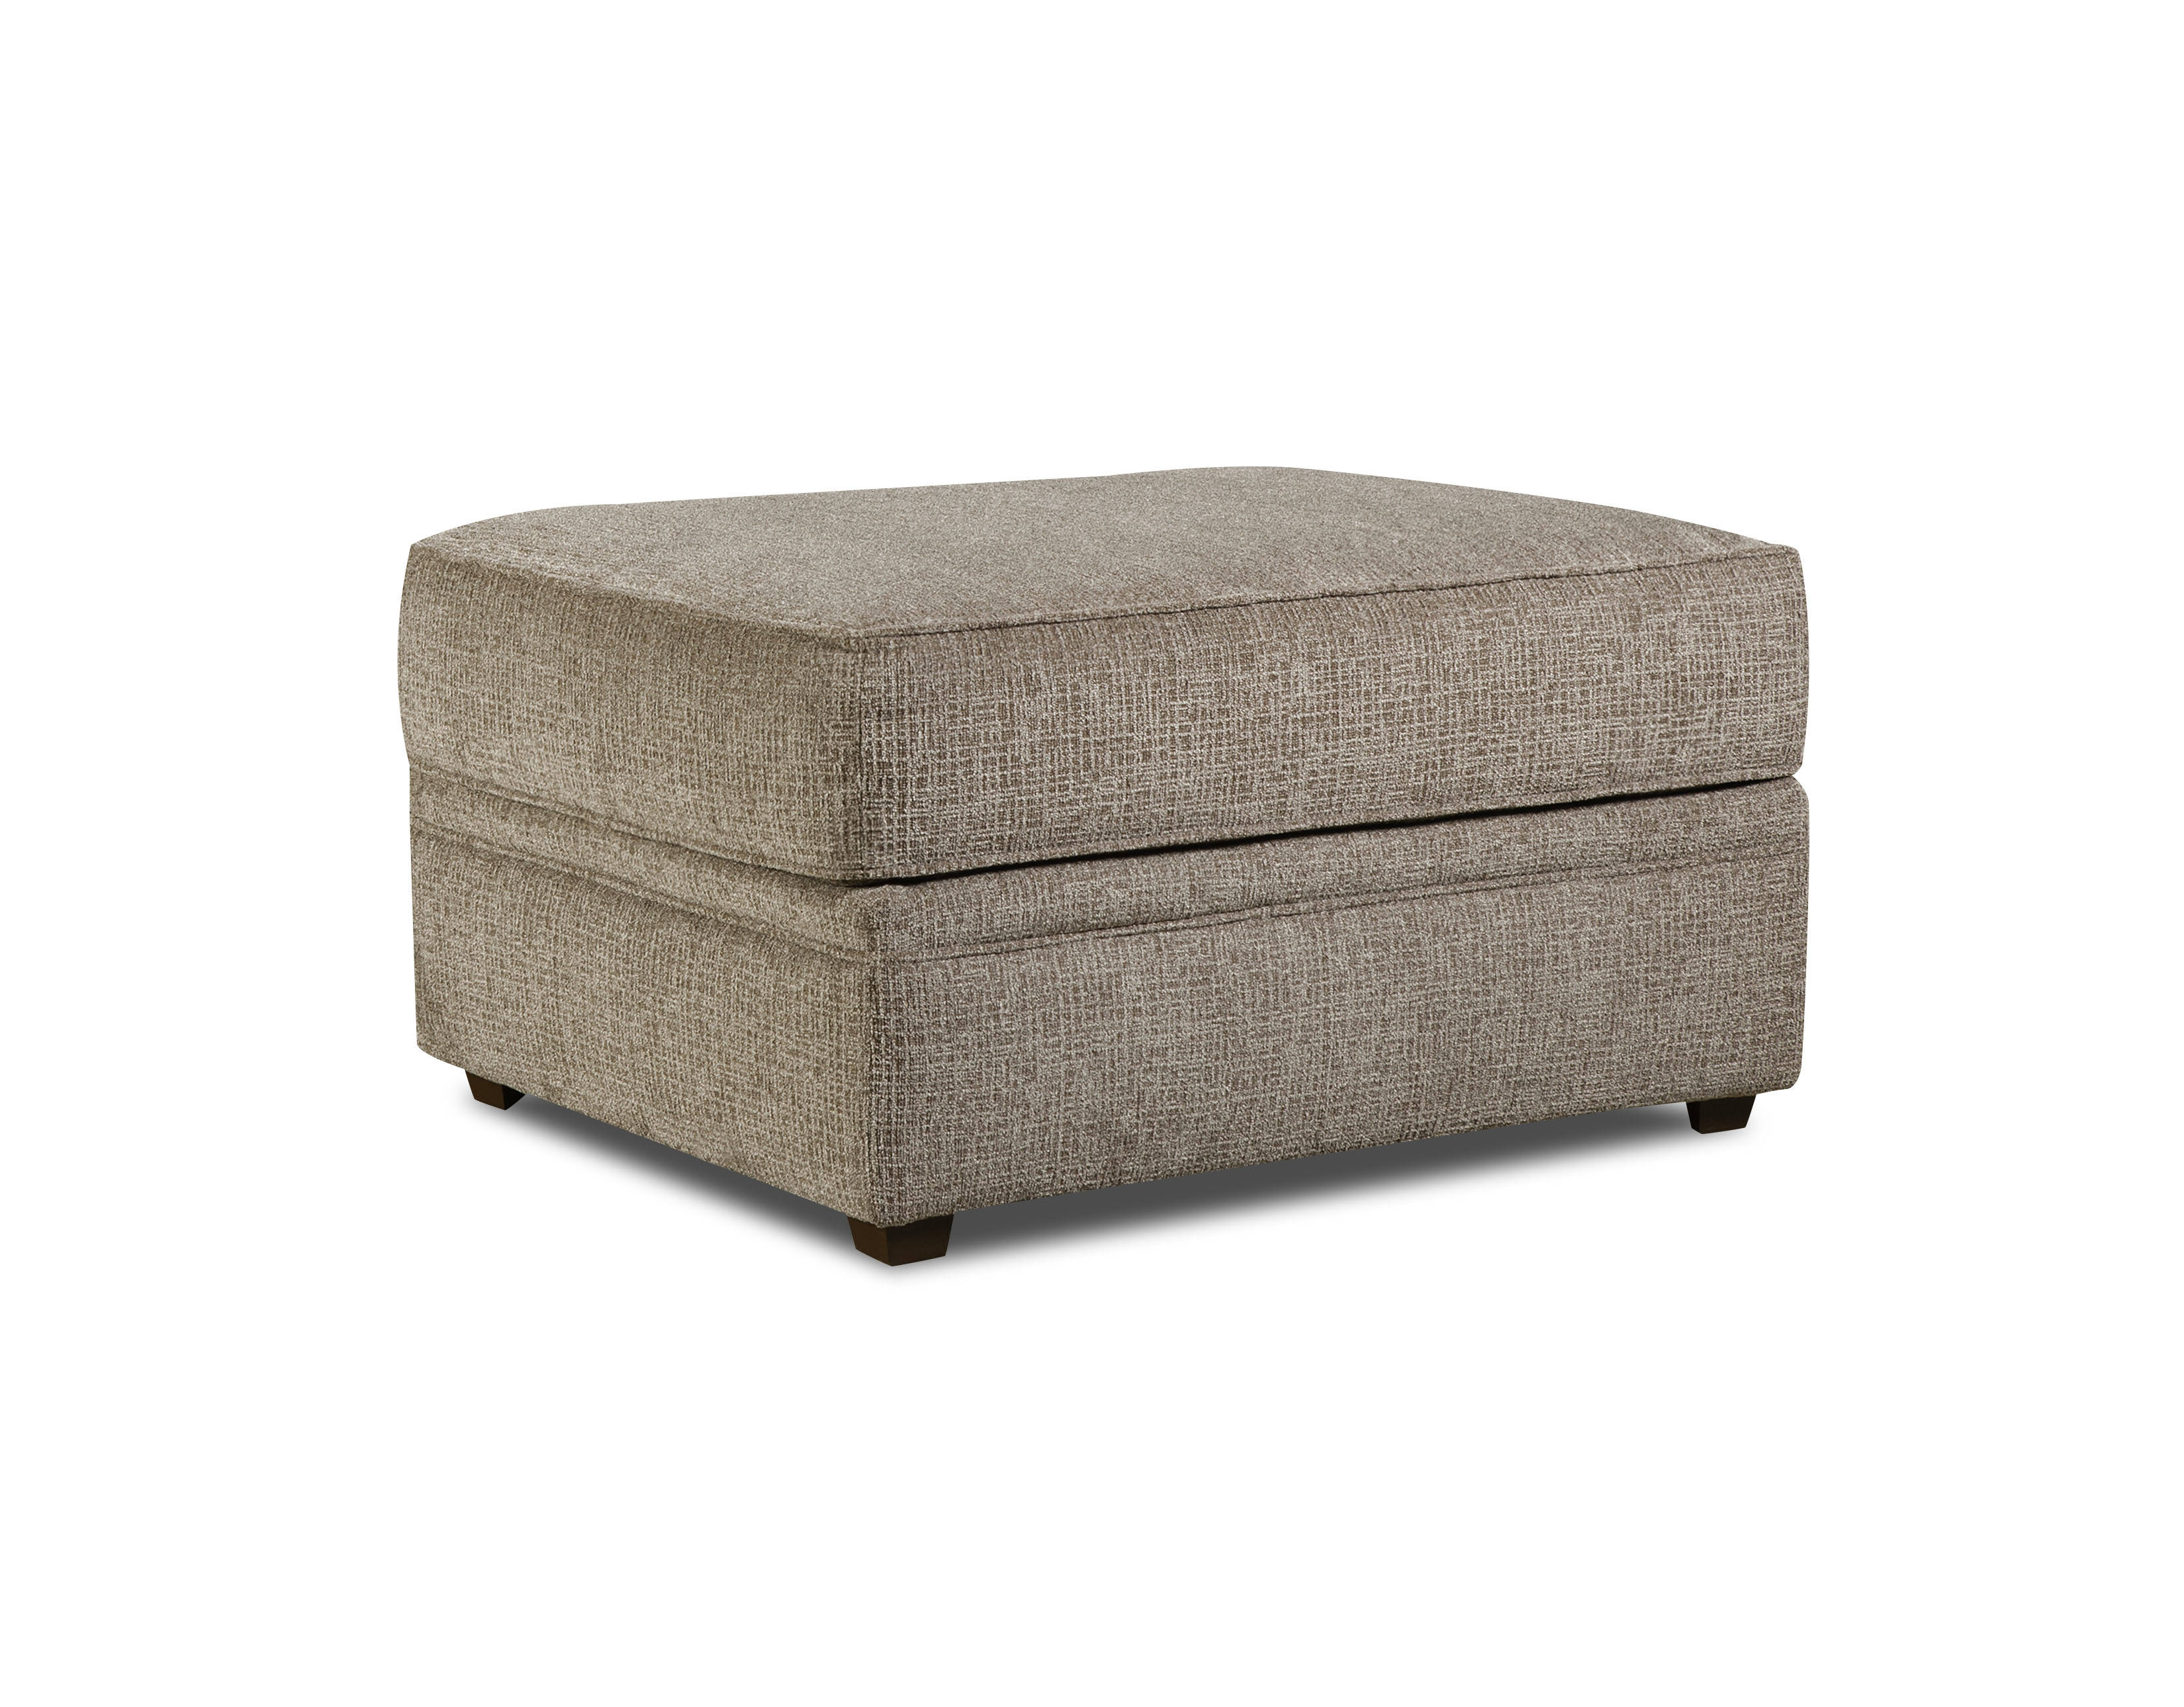 Astounding United Furniture Macey Pewter Simmons Ottoman Caraccident5 Cool Chair Designs And Ideas Caraccident5Info